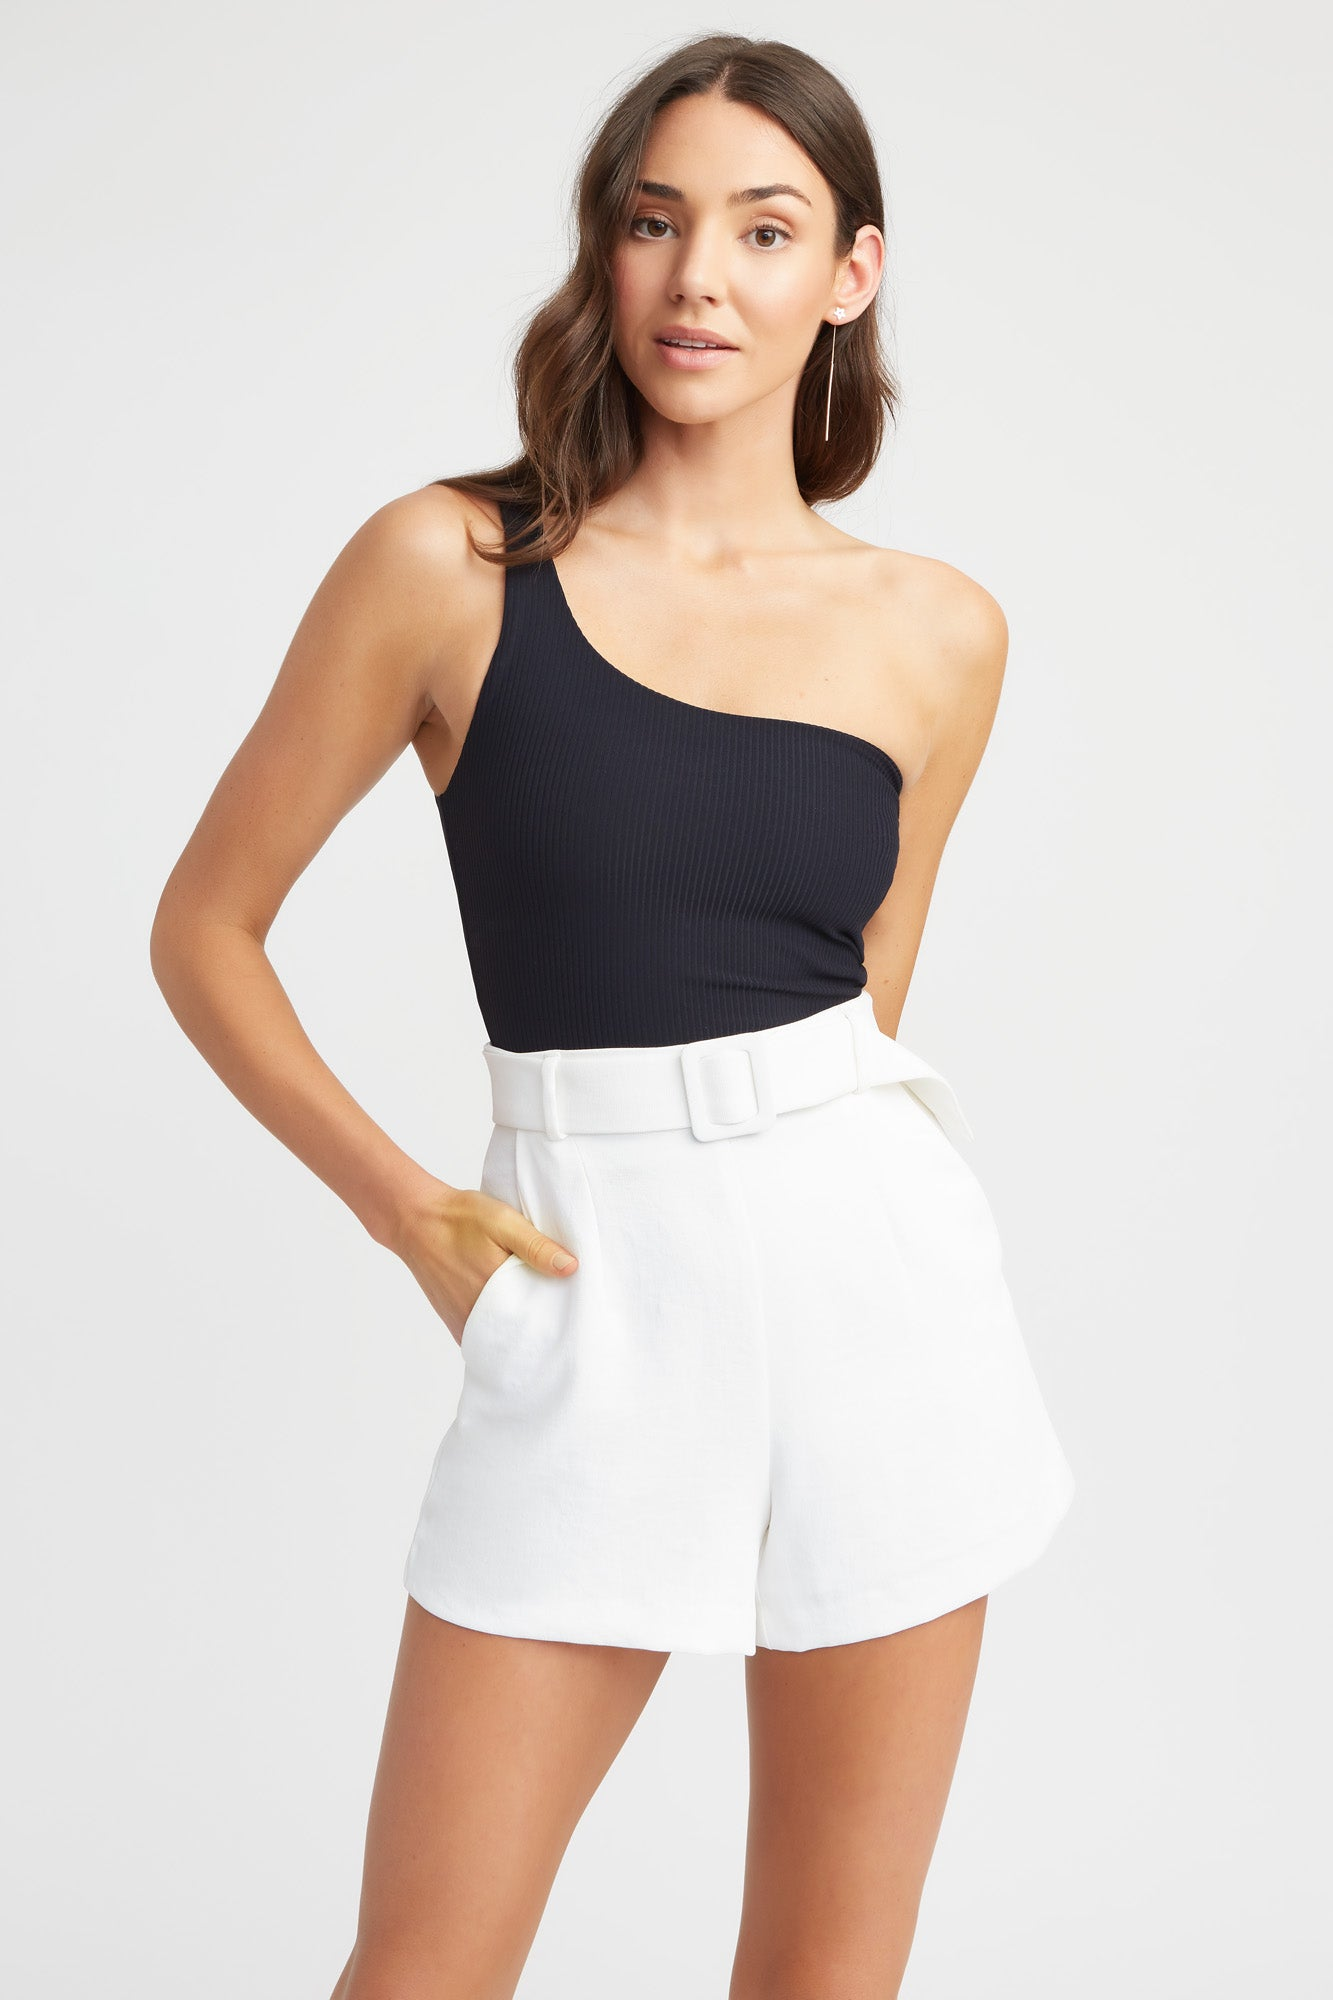 Oyster Belted Shorts by KookaÏ